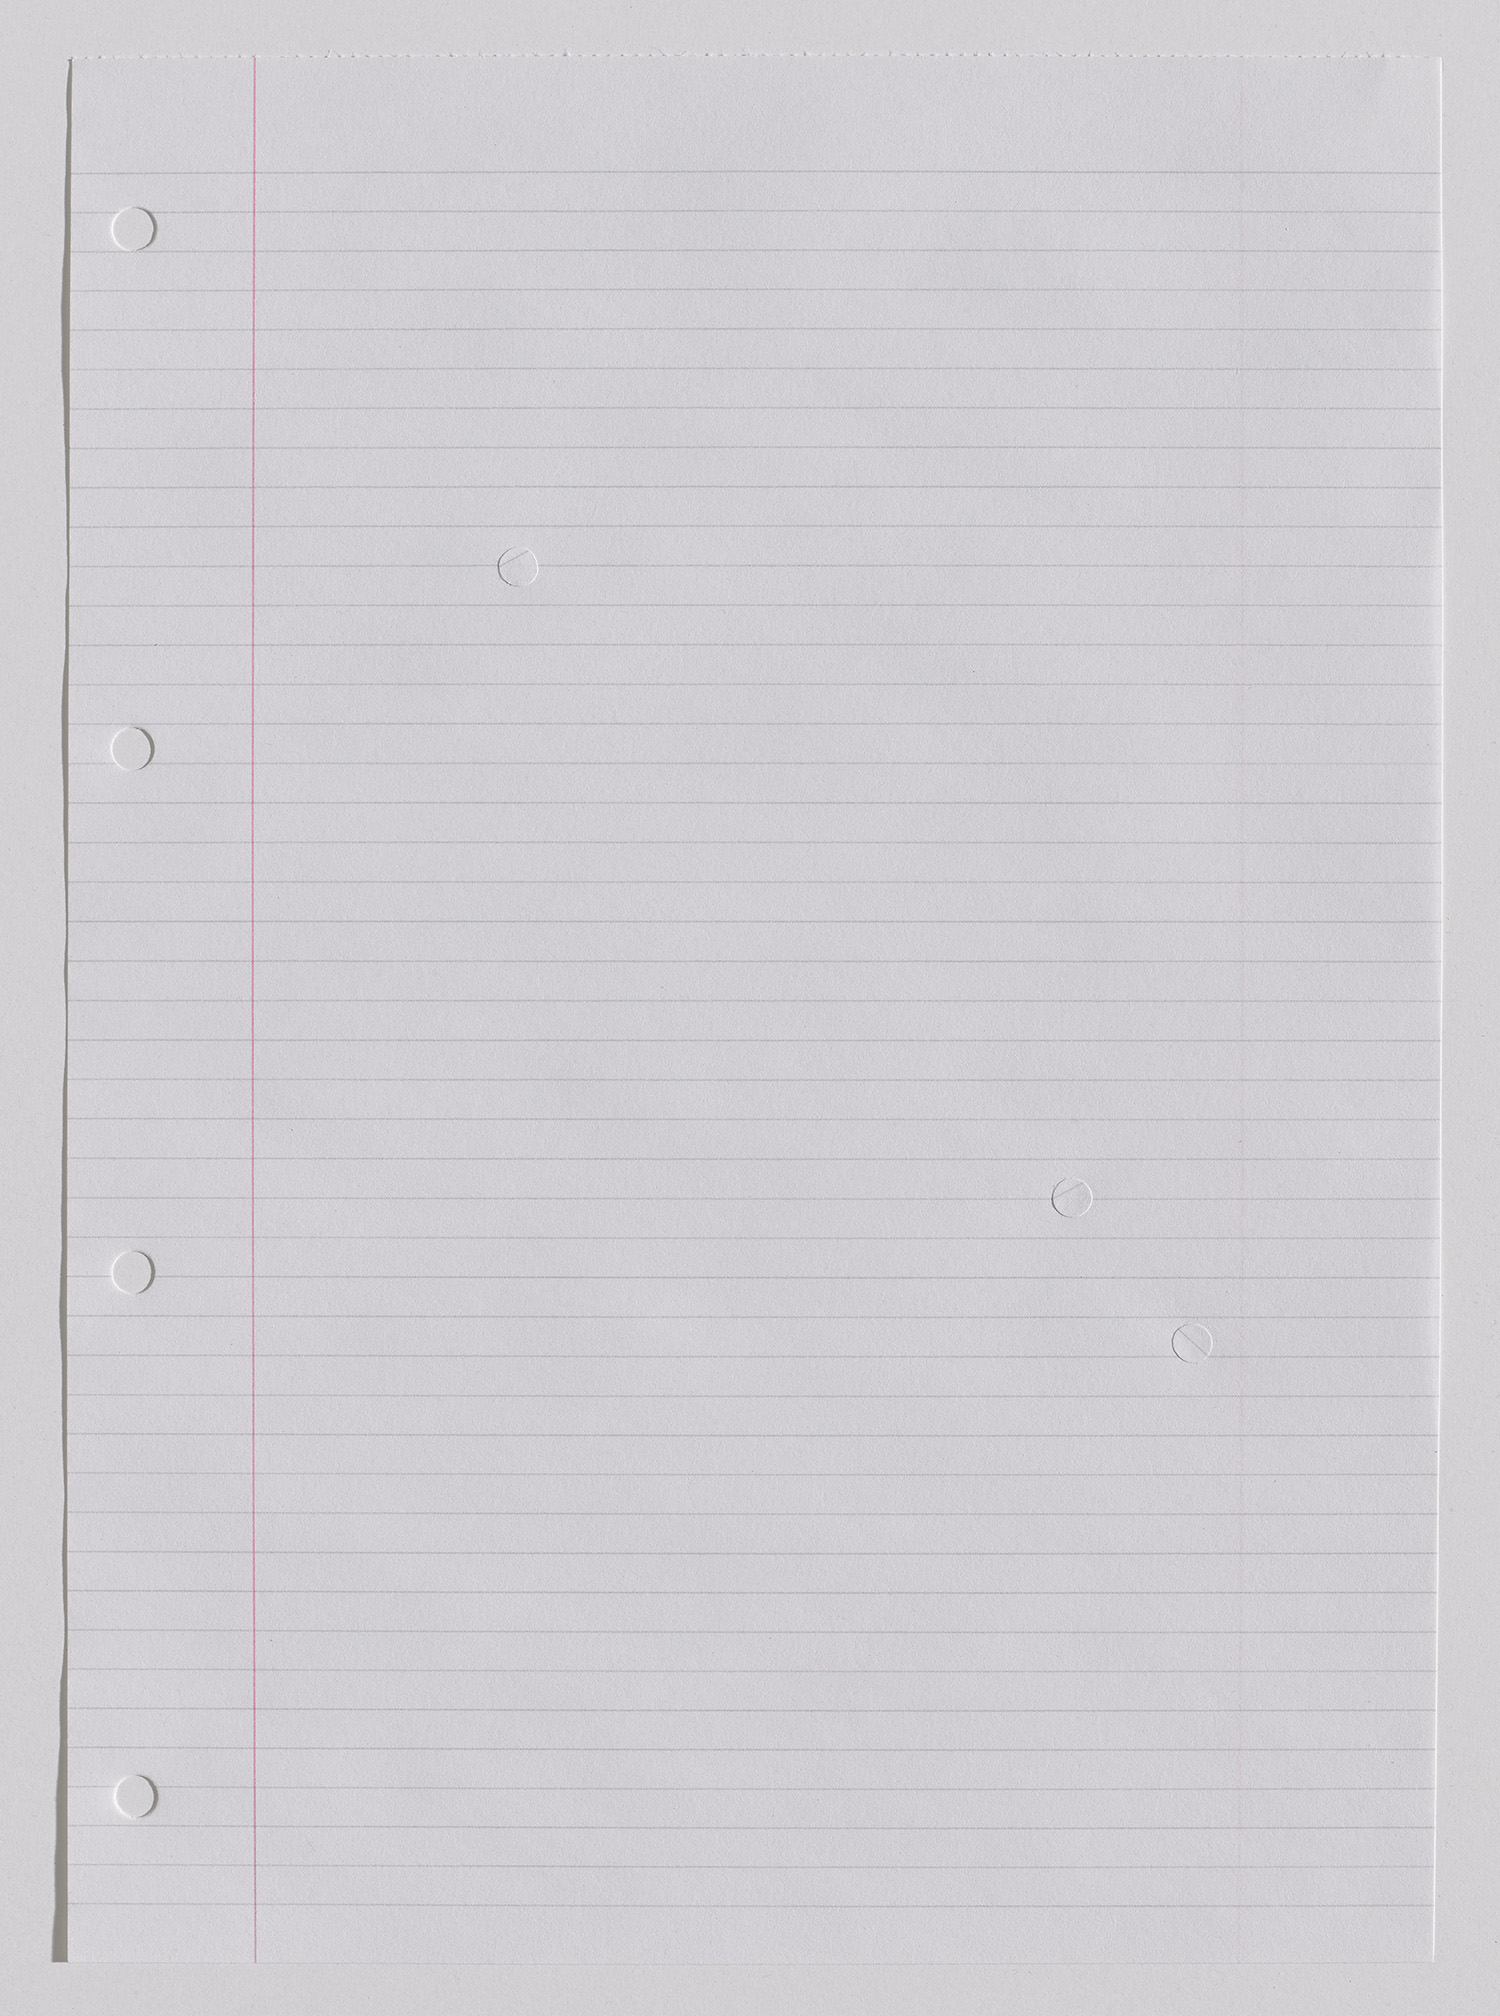 dotted-lines-6.jpg